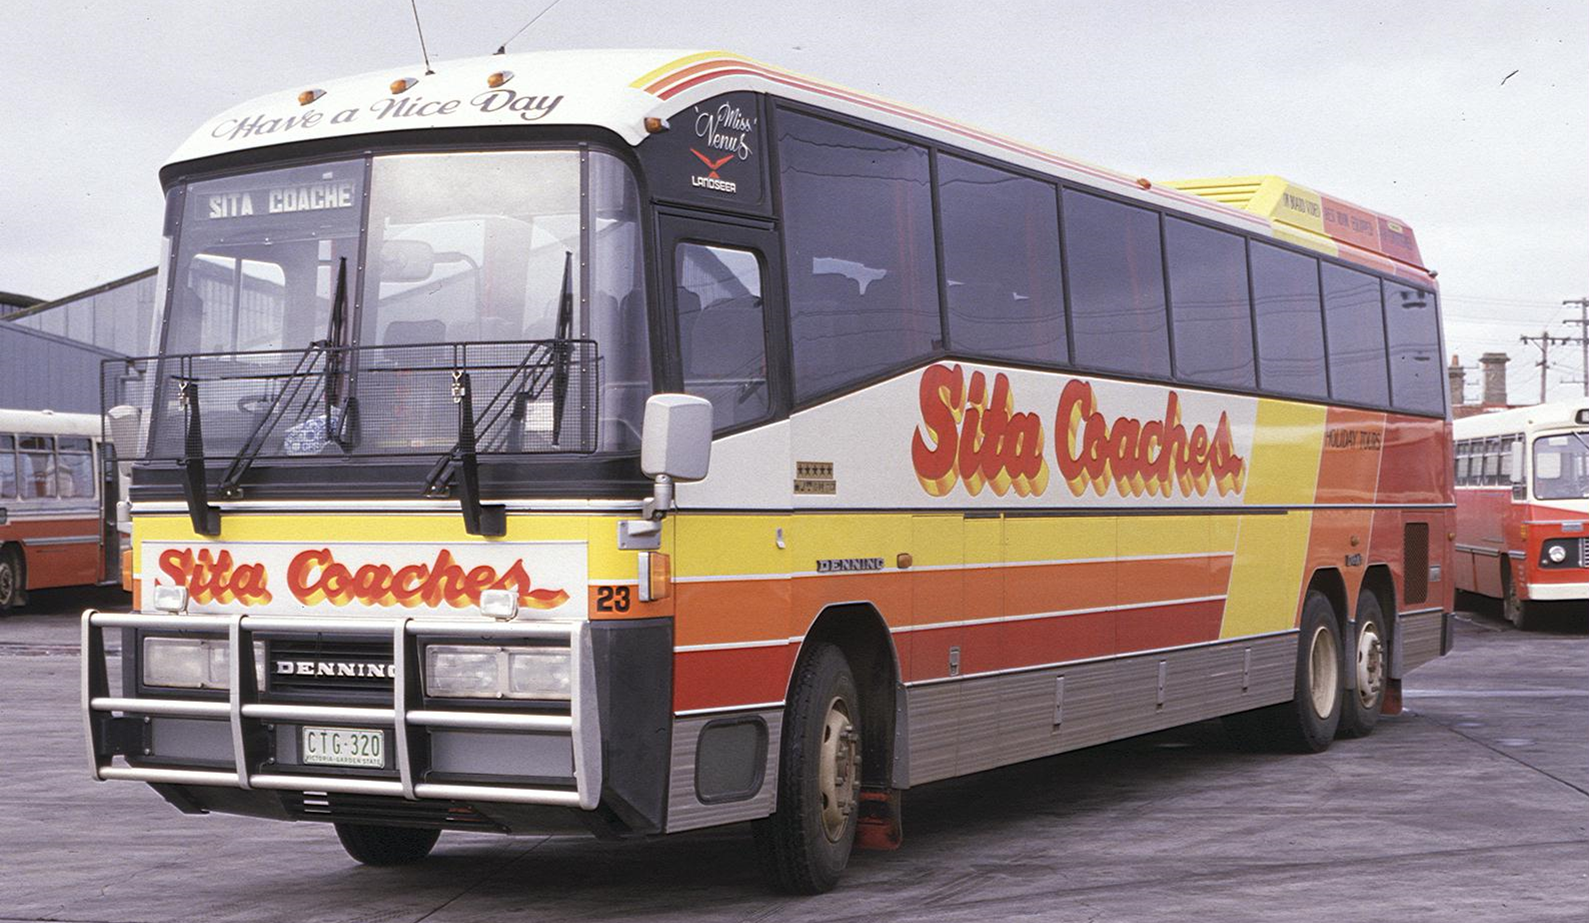 Denning double decker for sale - The Denair Was Replaced In 1985 By The Denning Landseer One Of Australia S Premier Coach Products One Was Sita Bus Lines Ctg 320 Peter Kane